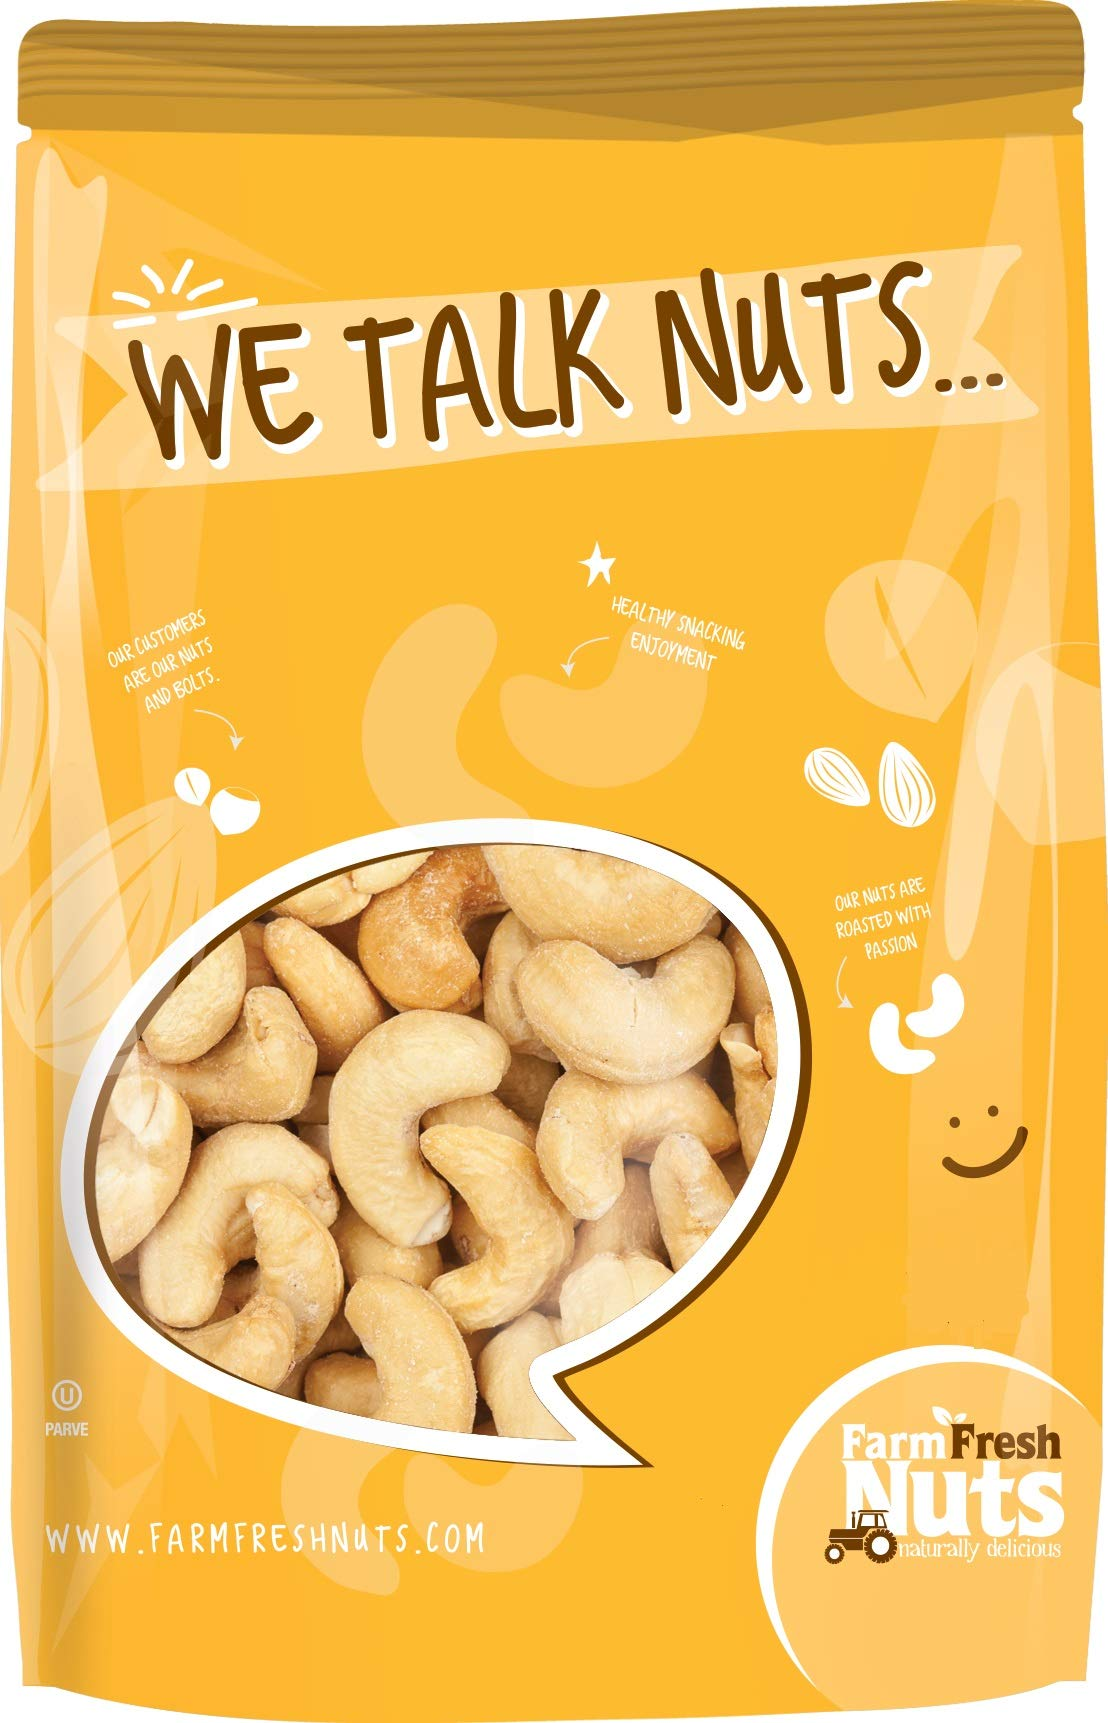 DRY ROASTED CASHEWS UNSALTED - Baked In Small Batches - WITHOUT OIL - PERFECTLY CRUNCHY - NATURALLY DELICIOUS. 1 Pound Bag